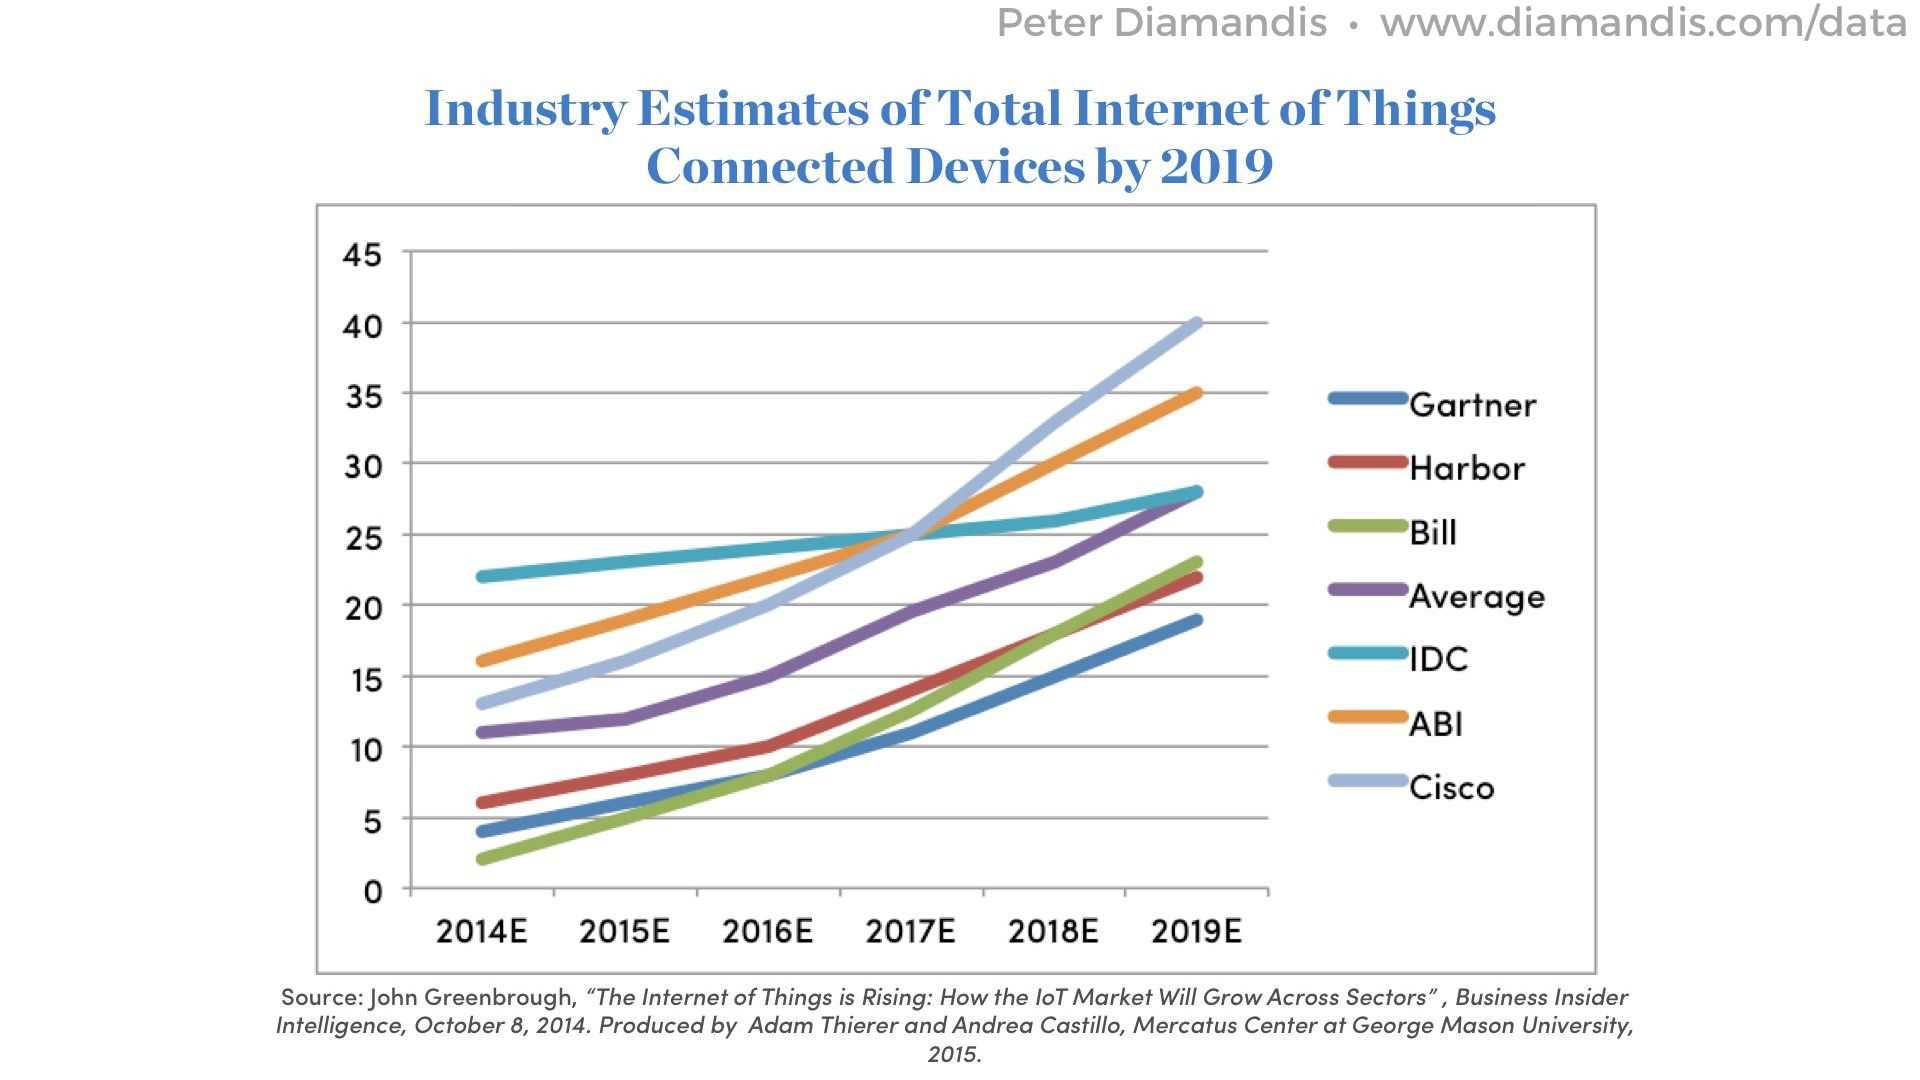 Total-Internet-of-Things-Connected-Devices-by-2019